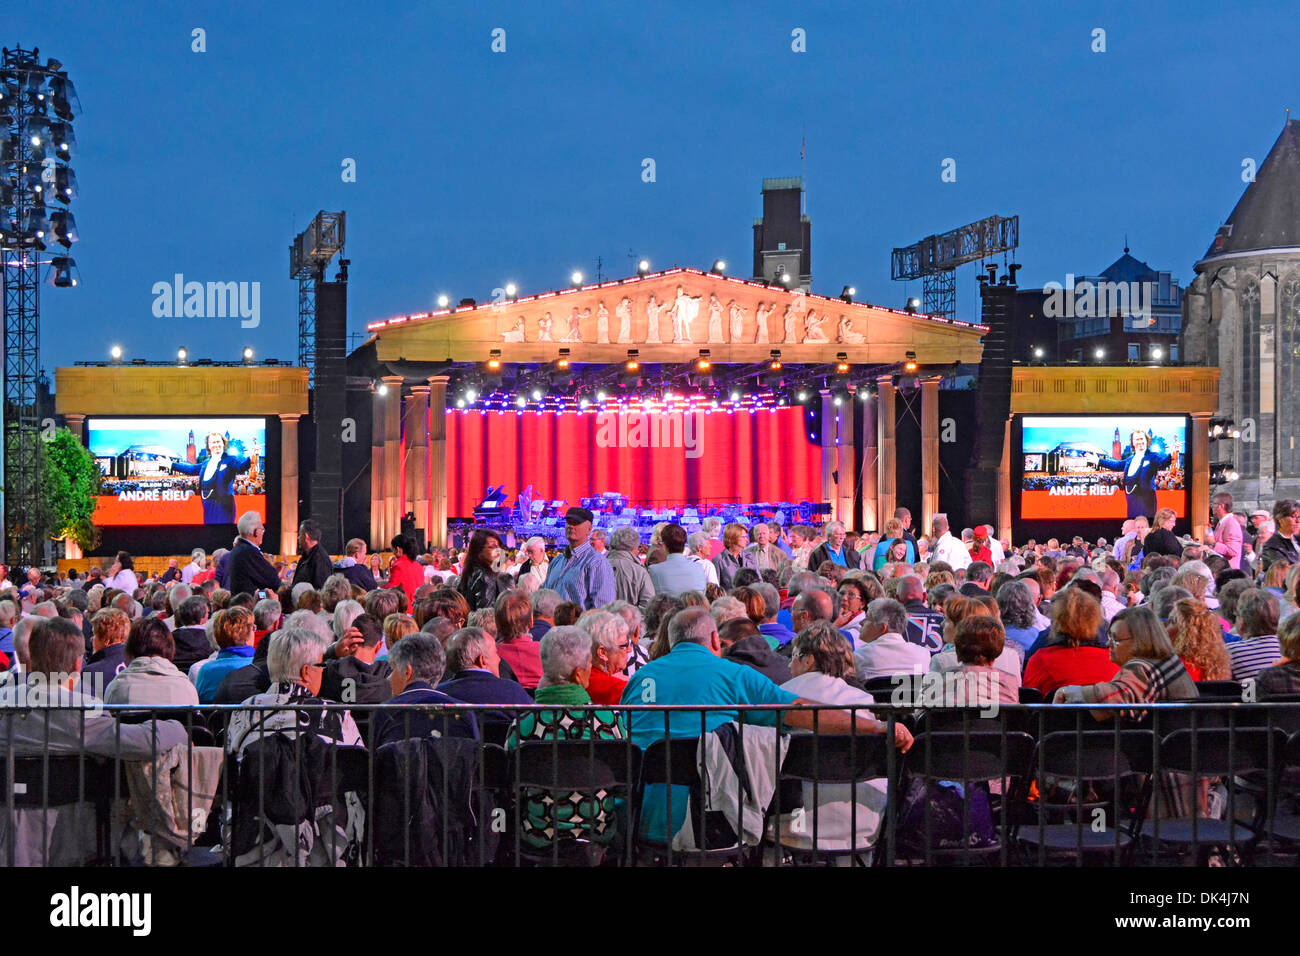 Audience in Vrijthof Square during interval for a André Rieu summer evening music concert showing stage & large TV screens - Stock Image